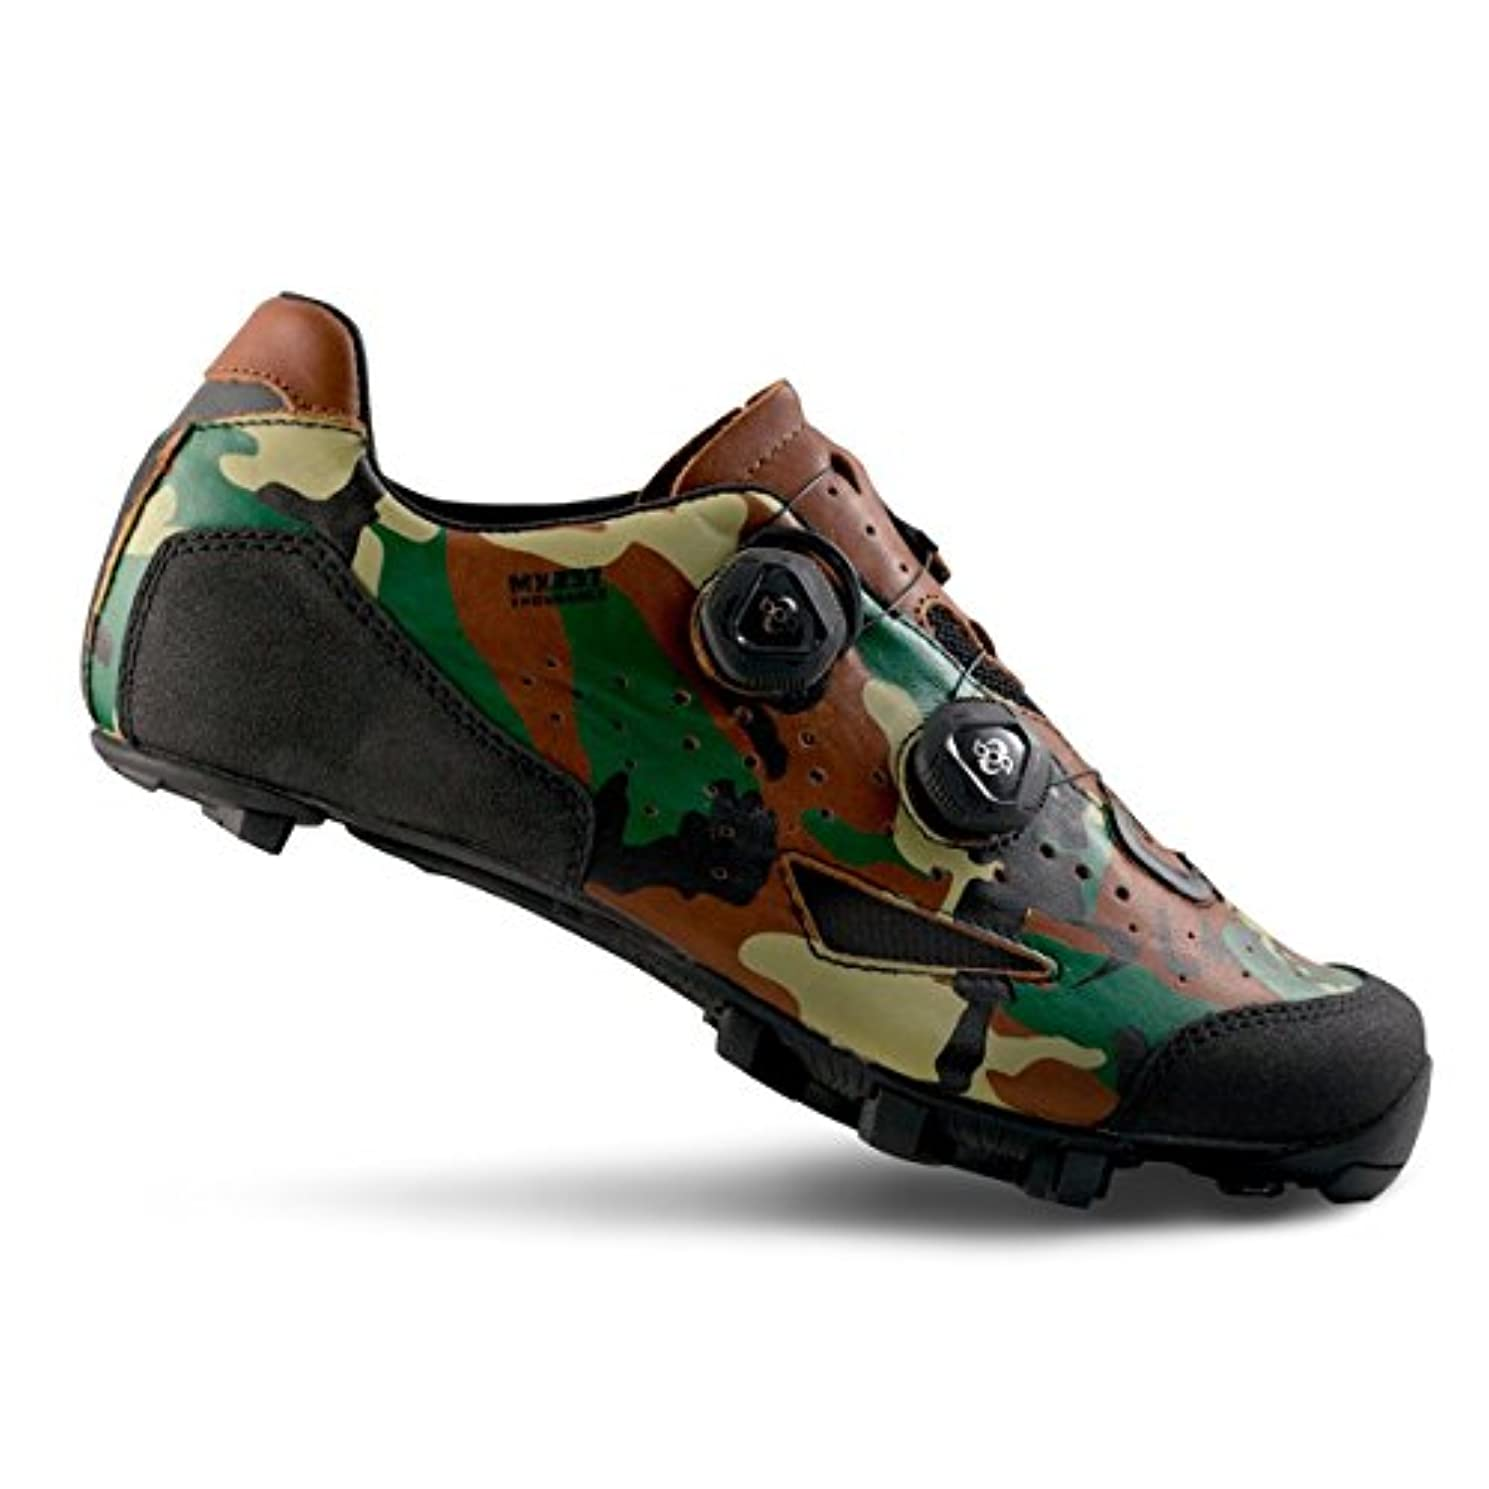 安全な凍結闇Lake mx237 Endurance Cycling Shoe – Wide – Men 's Camoフォレスト、46.0